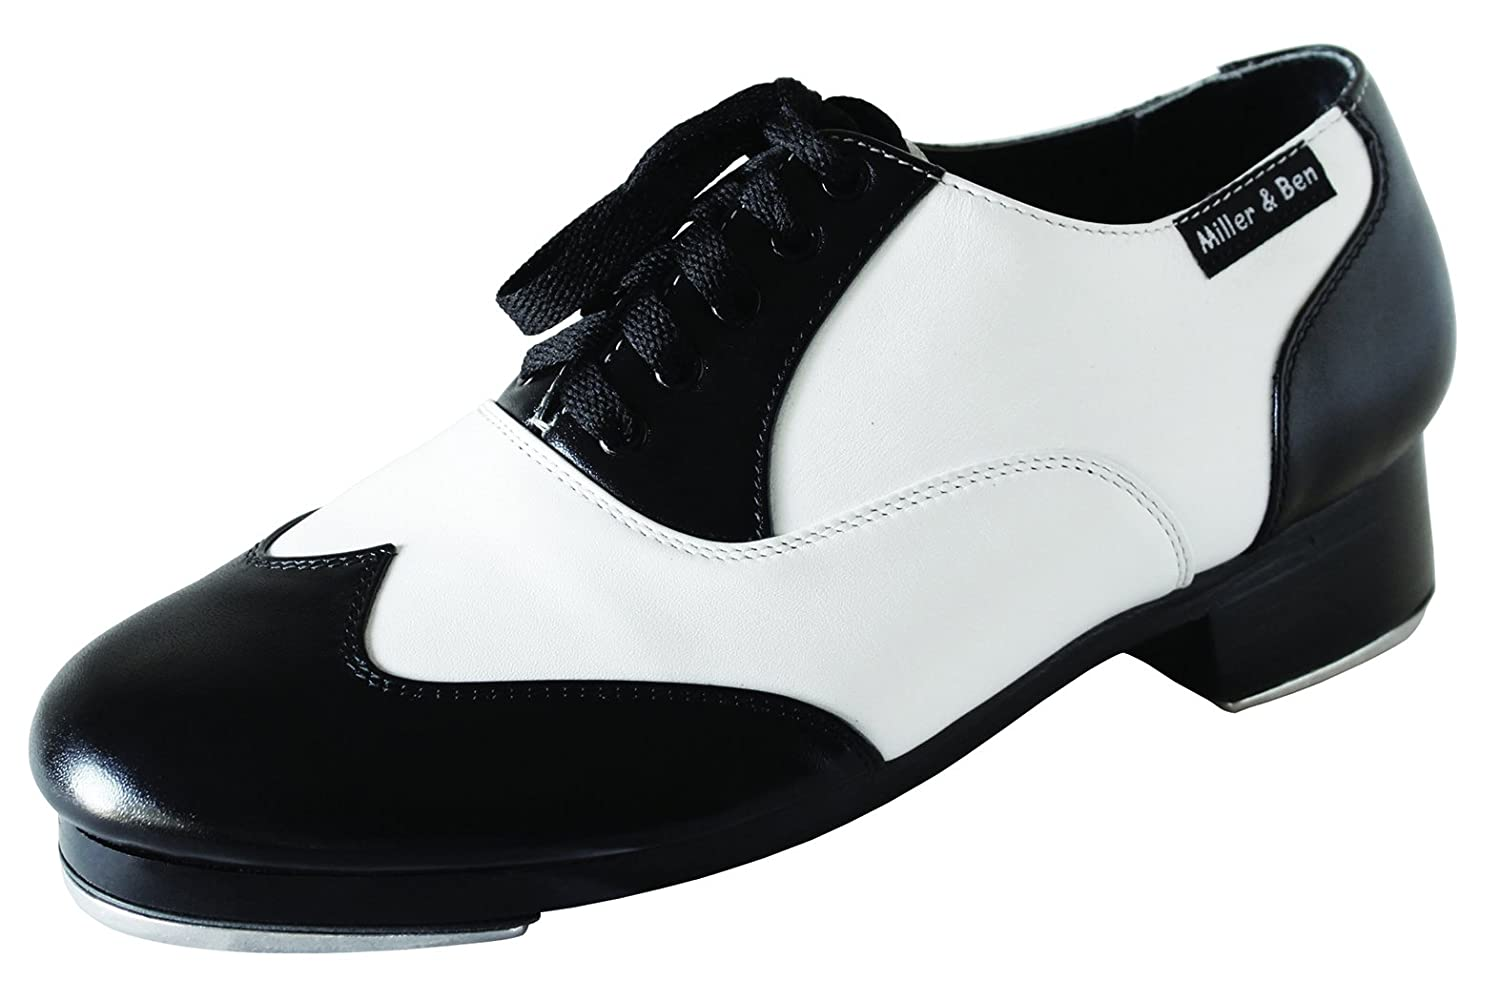 1940s Womens Footwear Miller & Ben Tap Shoes Jazz-Tap Master Black & White - STANDARD SIZES $285.00 AT vintagedancer.com